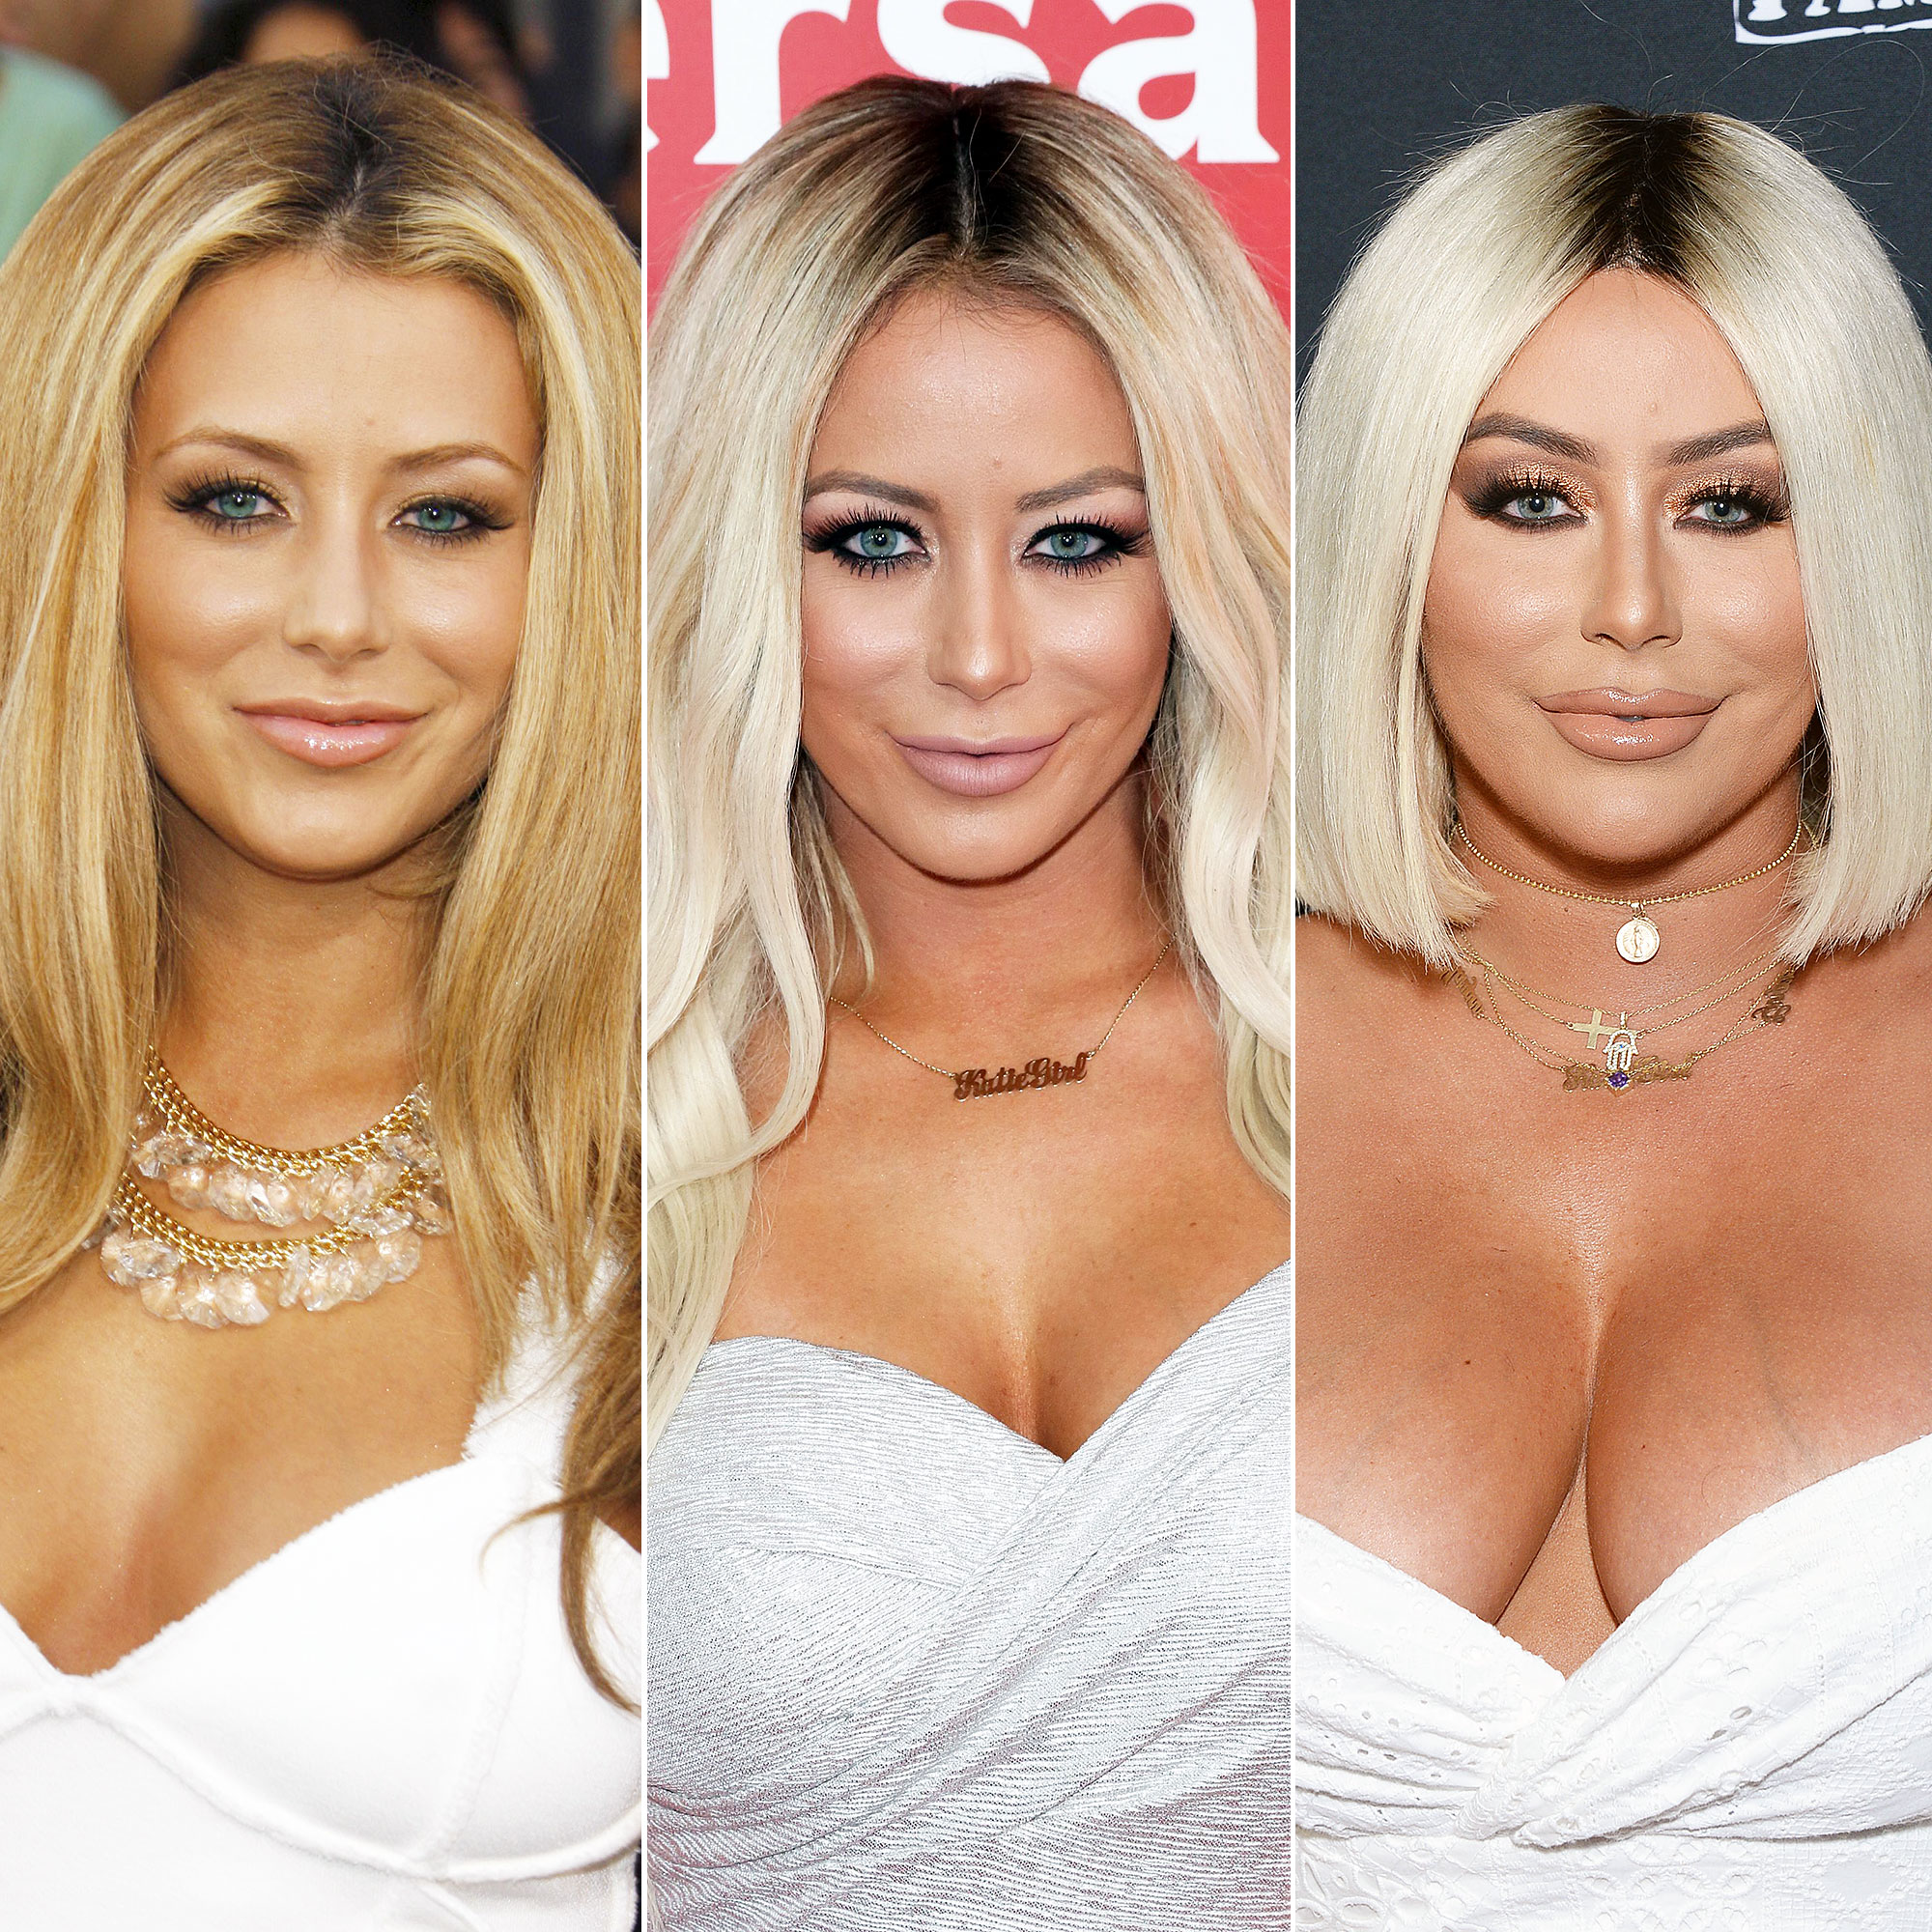 Aubrey O'Day Fires Back during Plastic Surgery Rumors